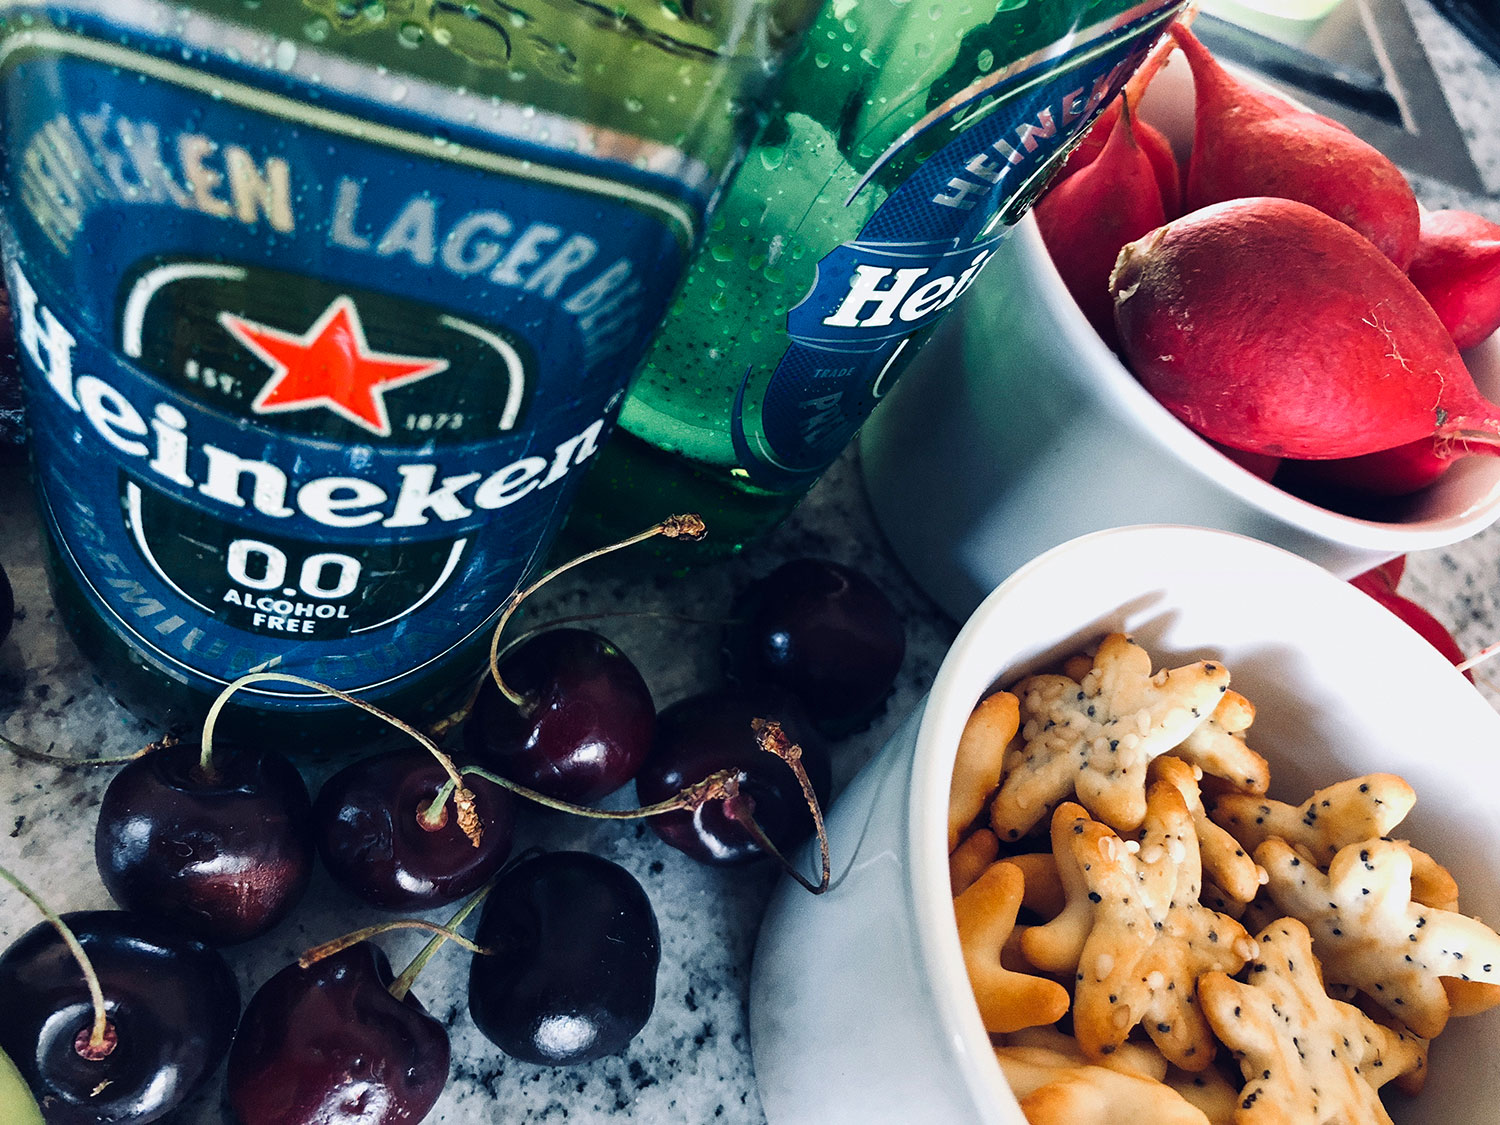 Heineken® 0.0: Great taste, all natural, only 69 calories and zero Alcohol